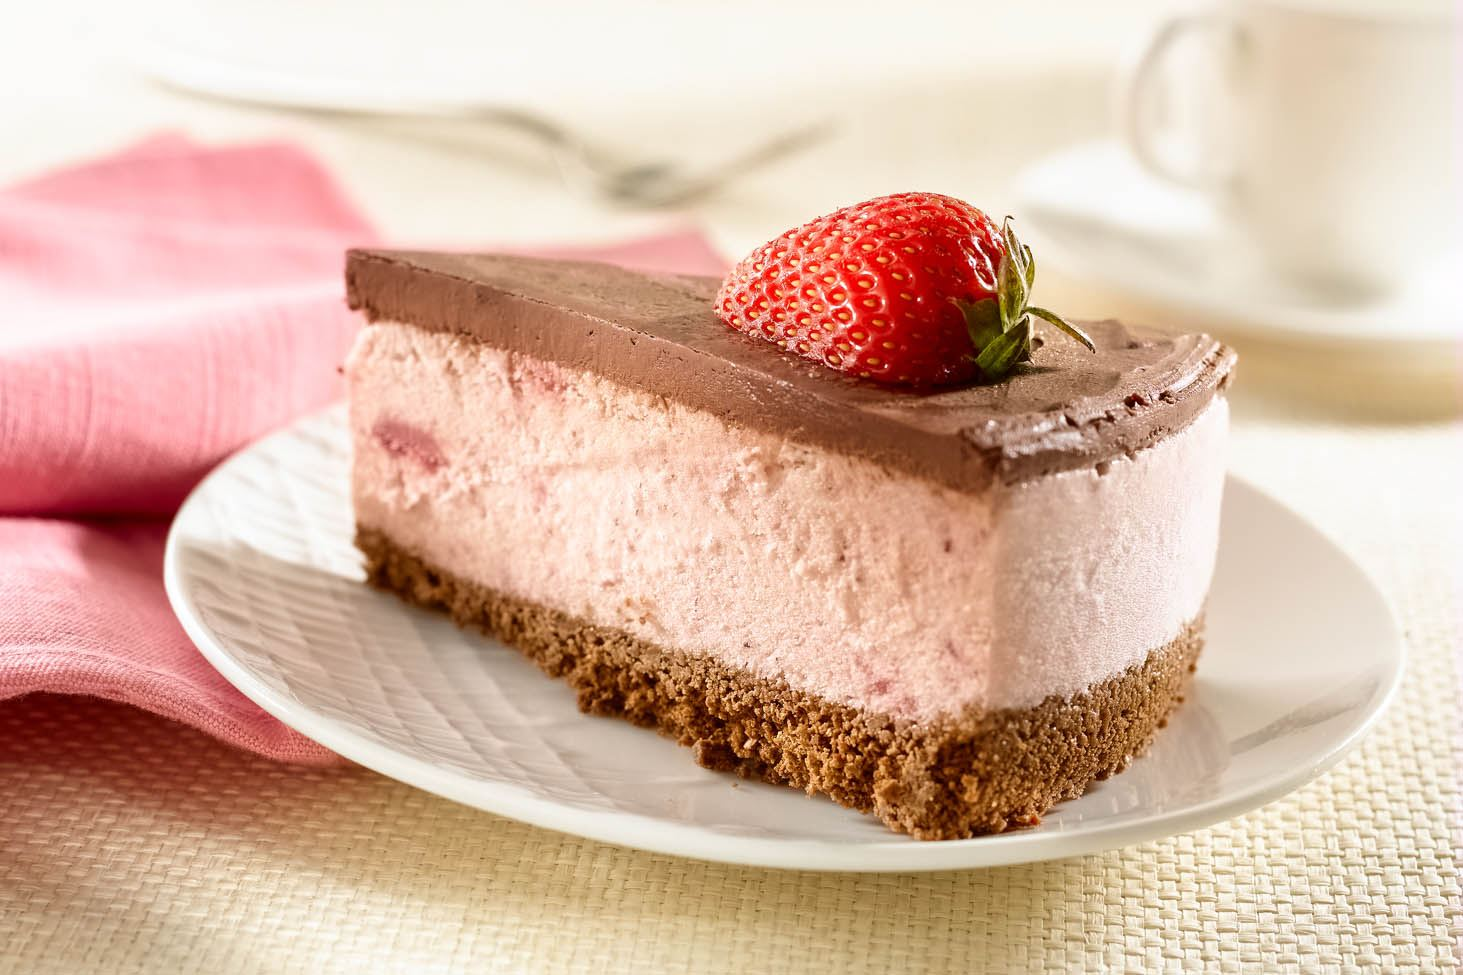 Strawberry and Chocolate Ice Cream Cake